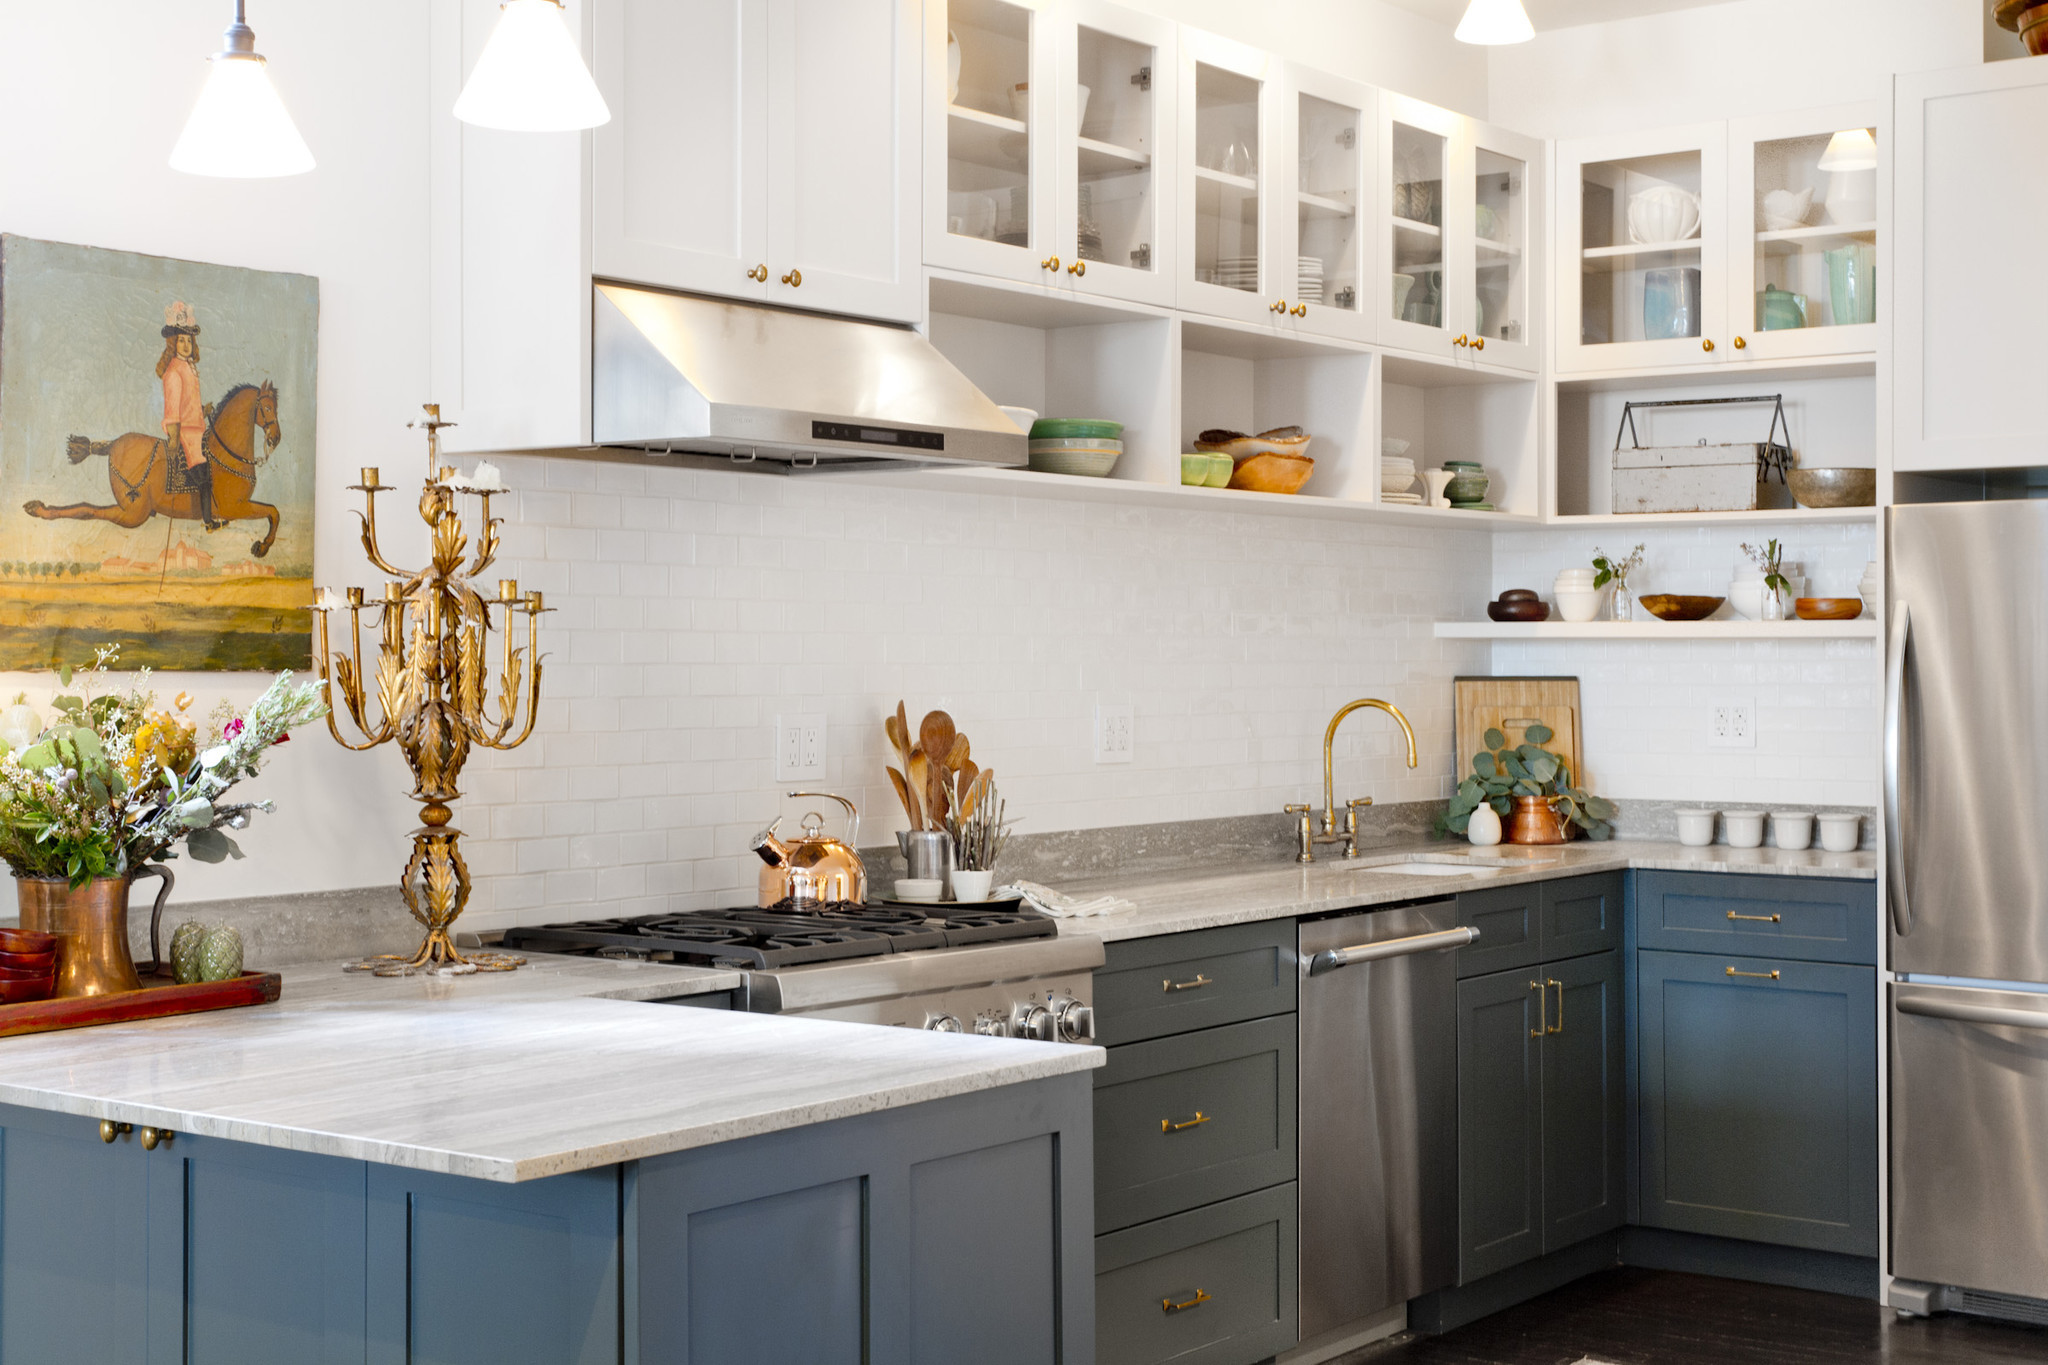 Kitchen Trends: Houzz Reports Themes For The Kitchen Will Include Mixed  Metal Finishes, And